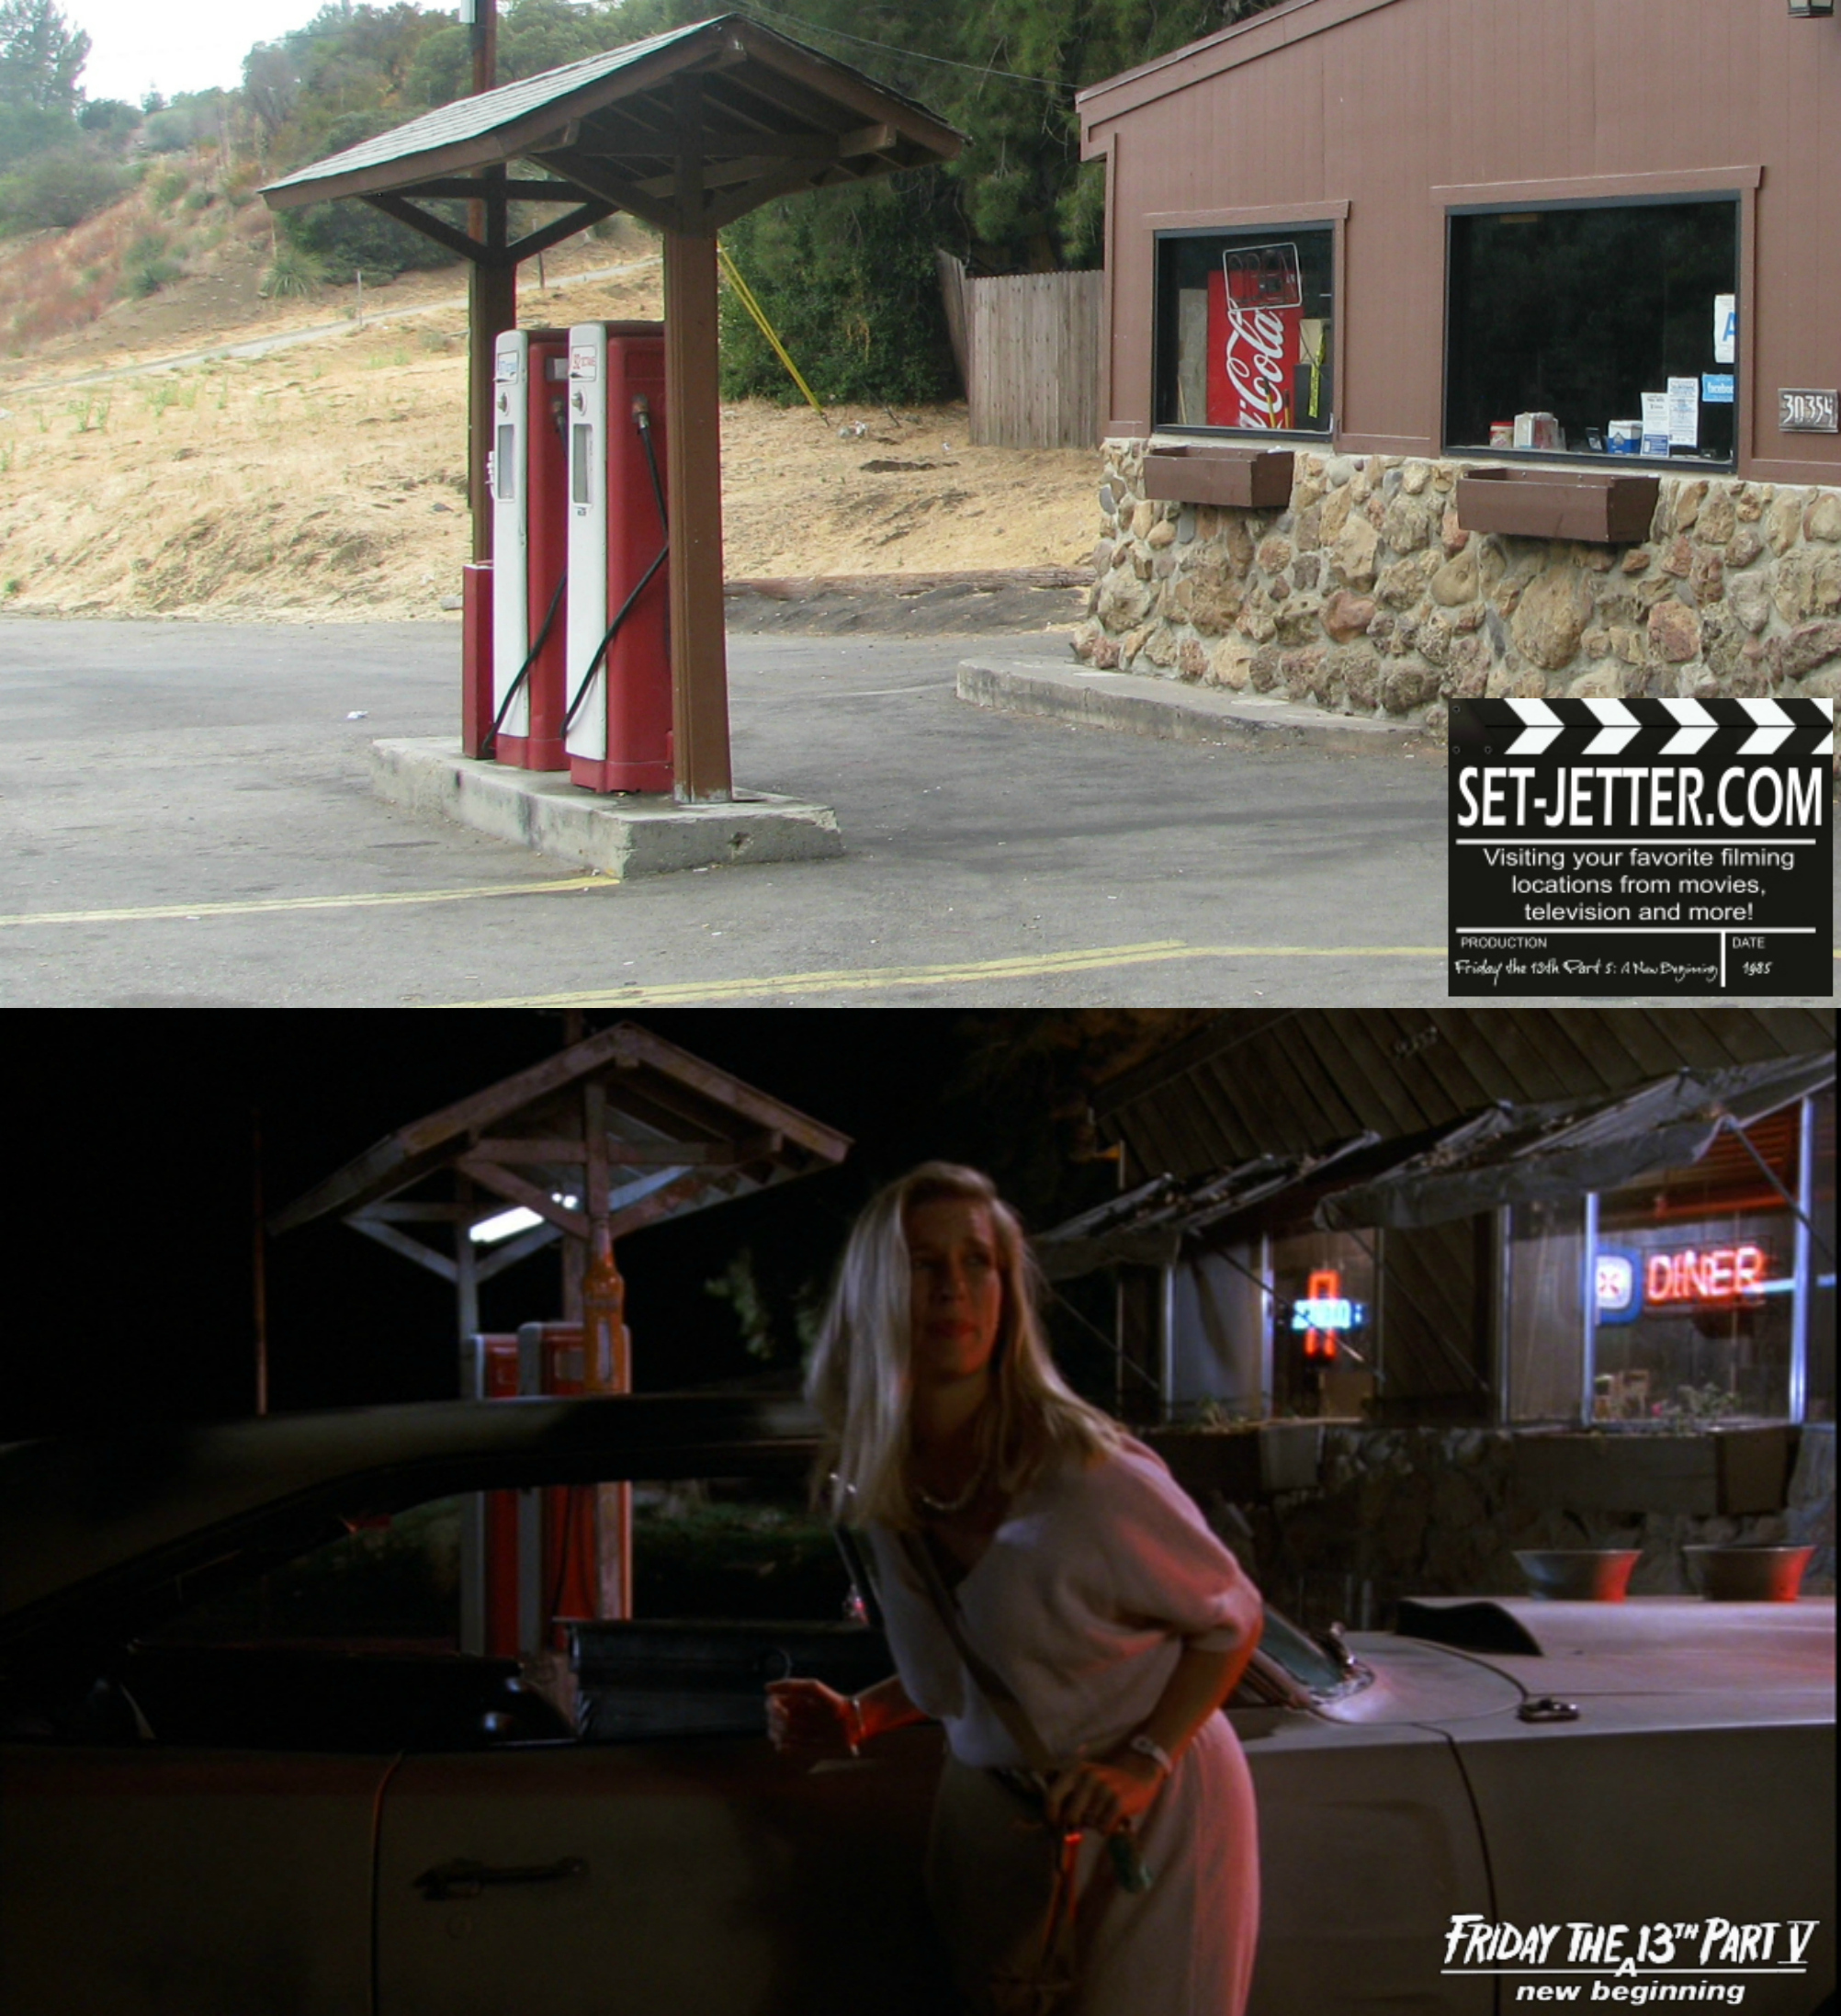 Friday the 13th Part V comparison 18.jpg